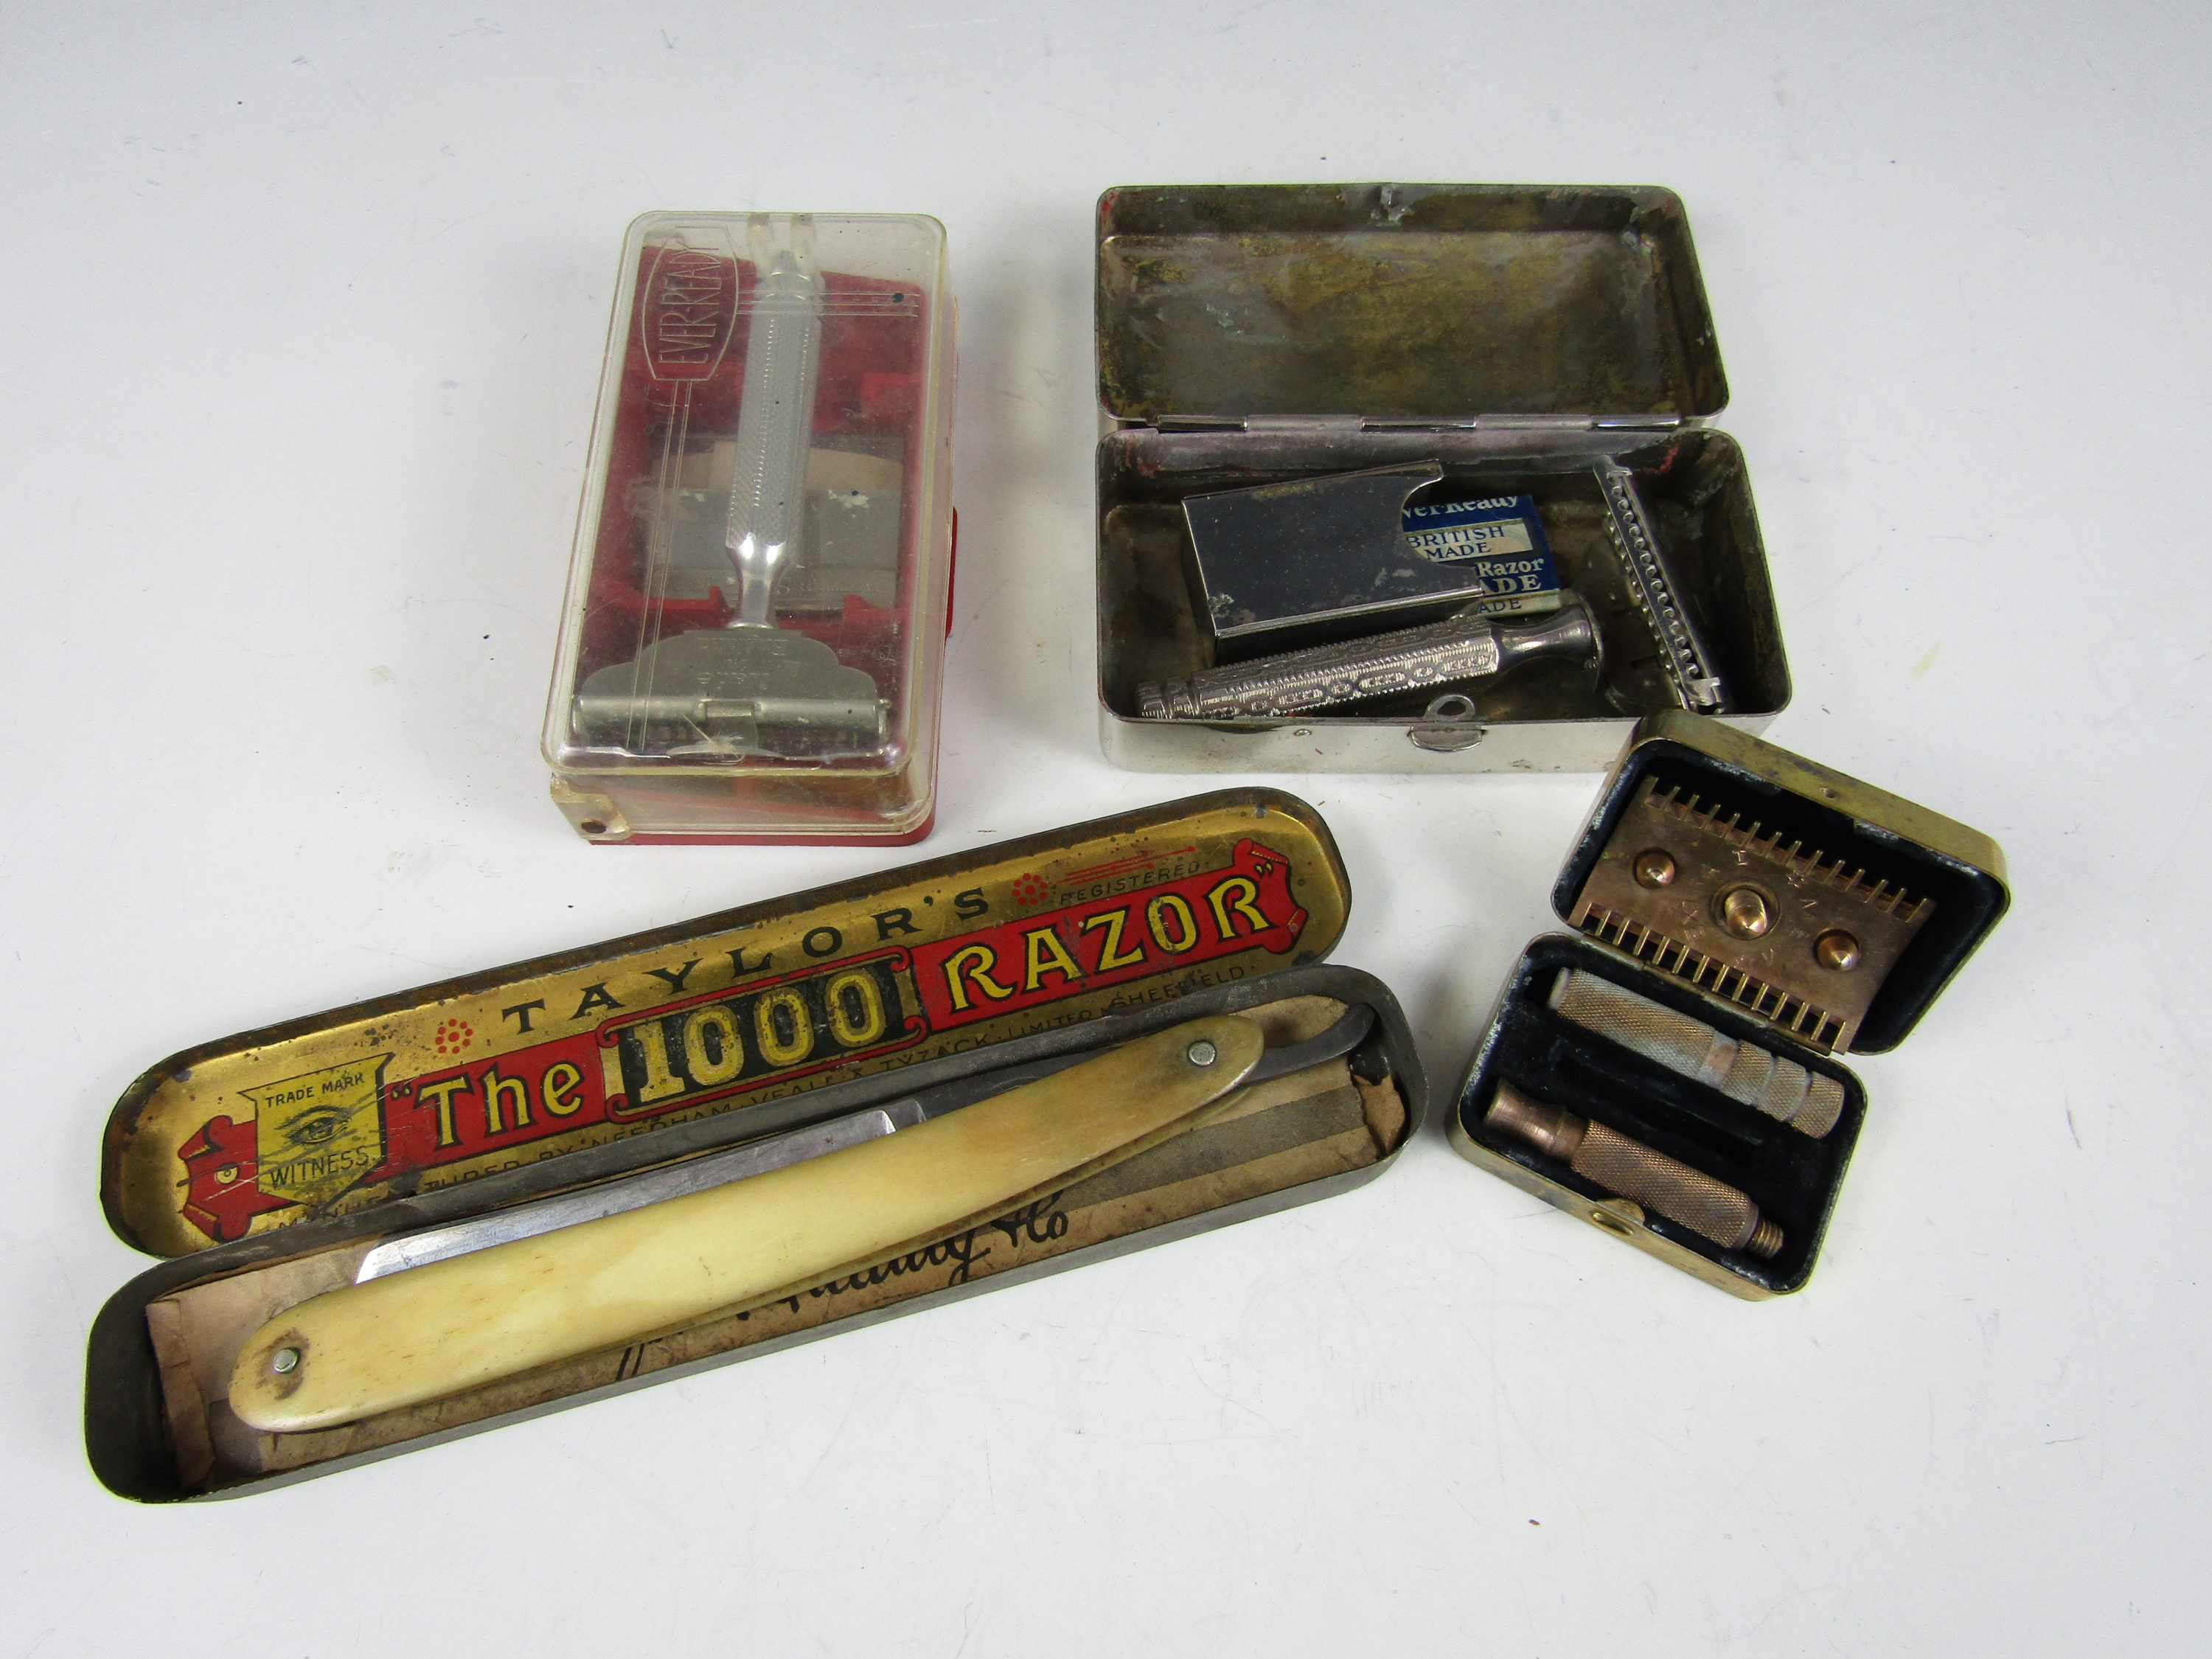 Lot 18 - A vintage Ever Ready razor together with The 1000 Razor and two others